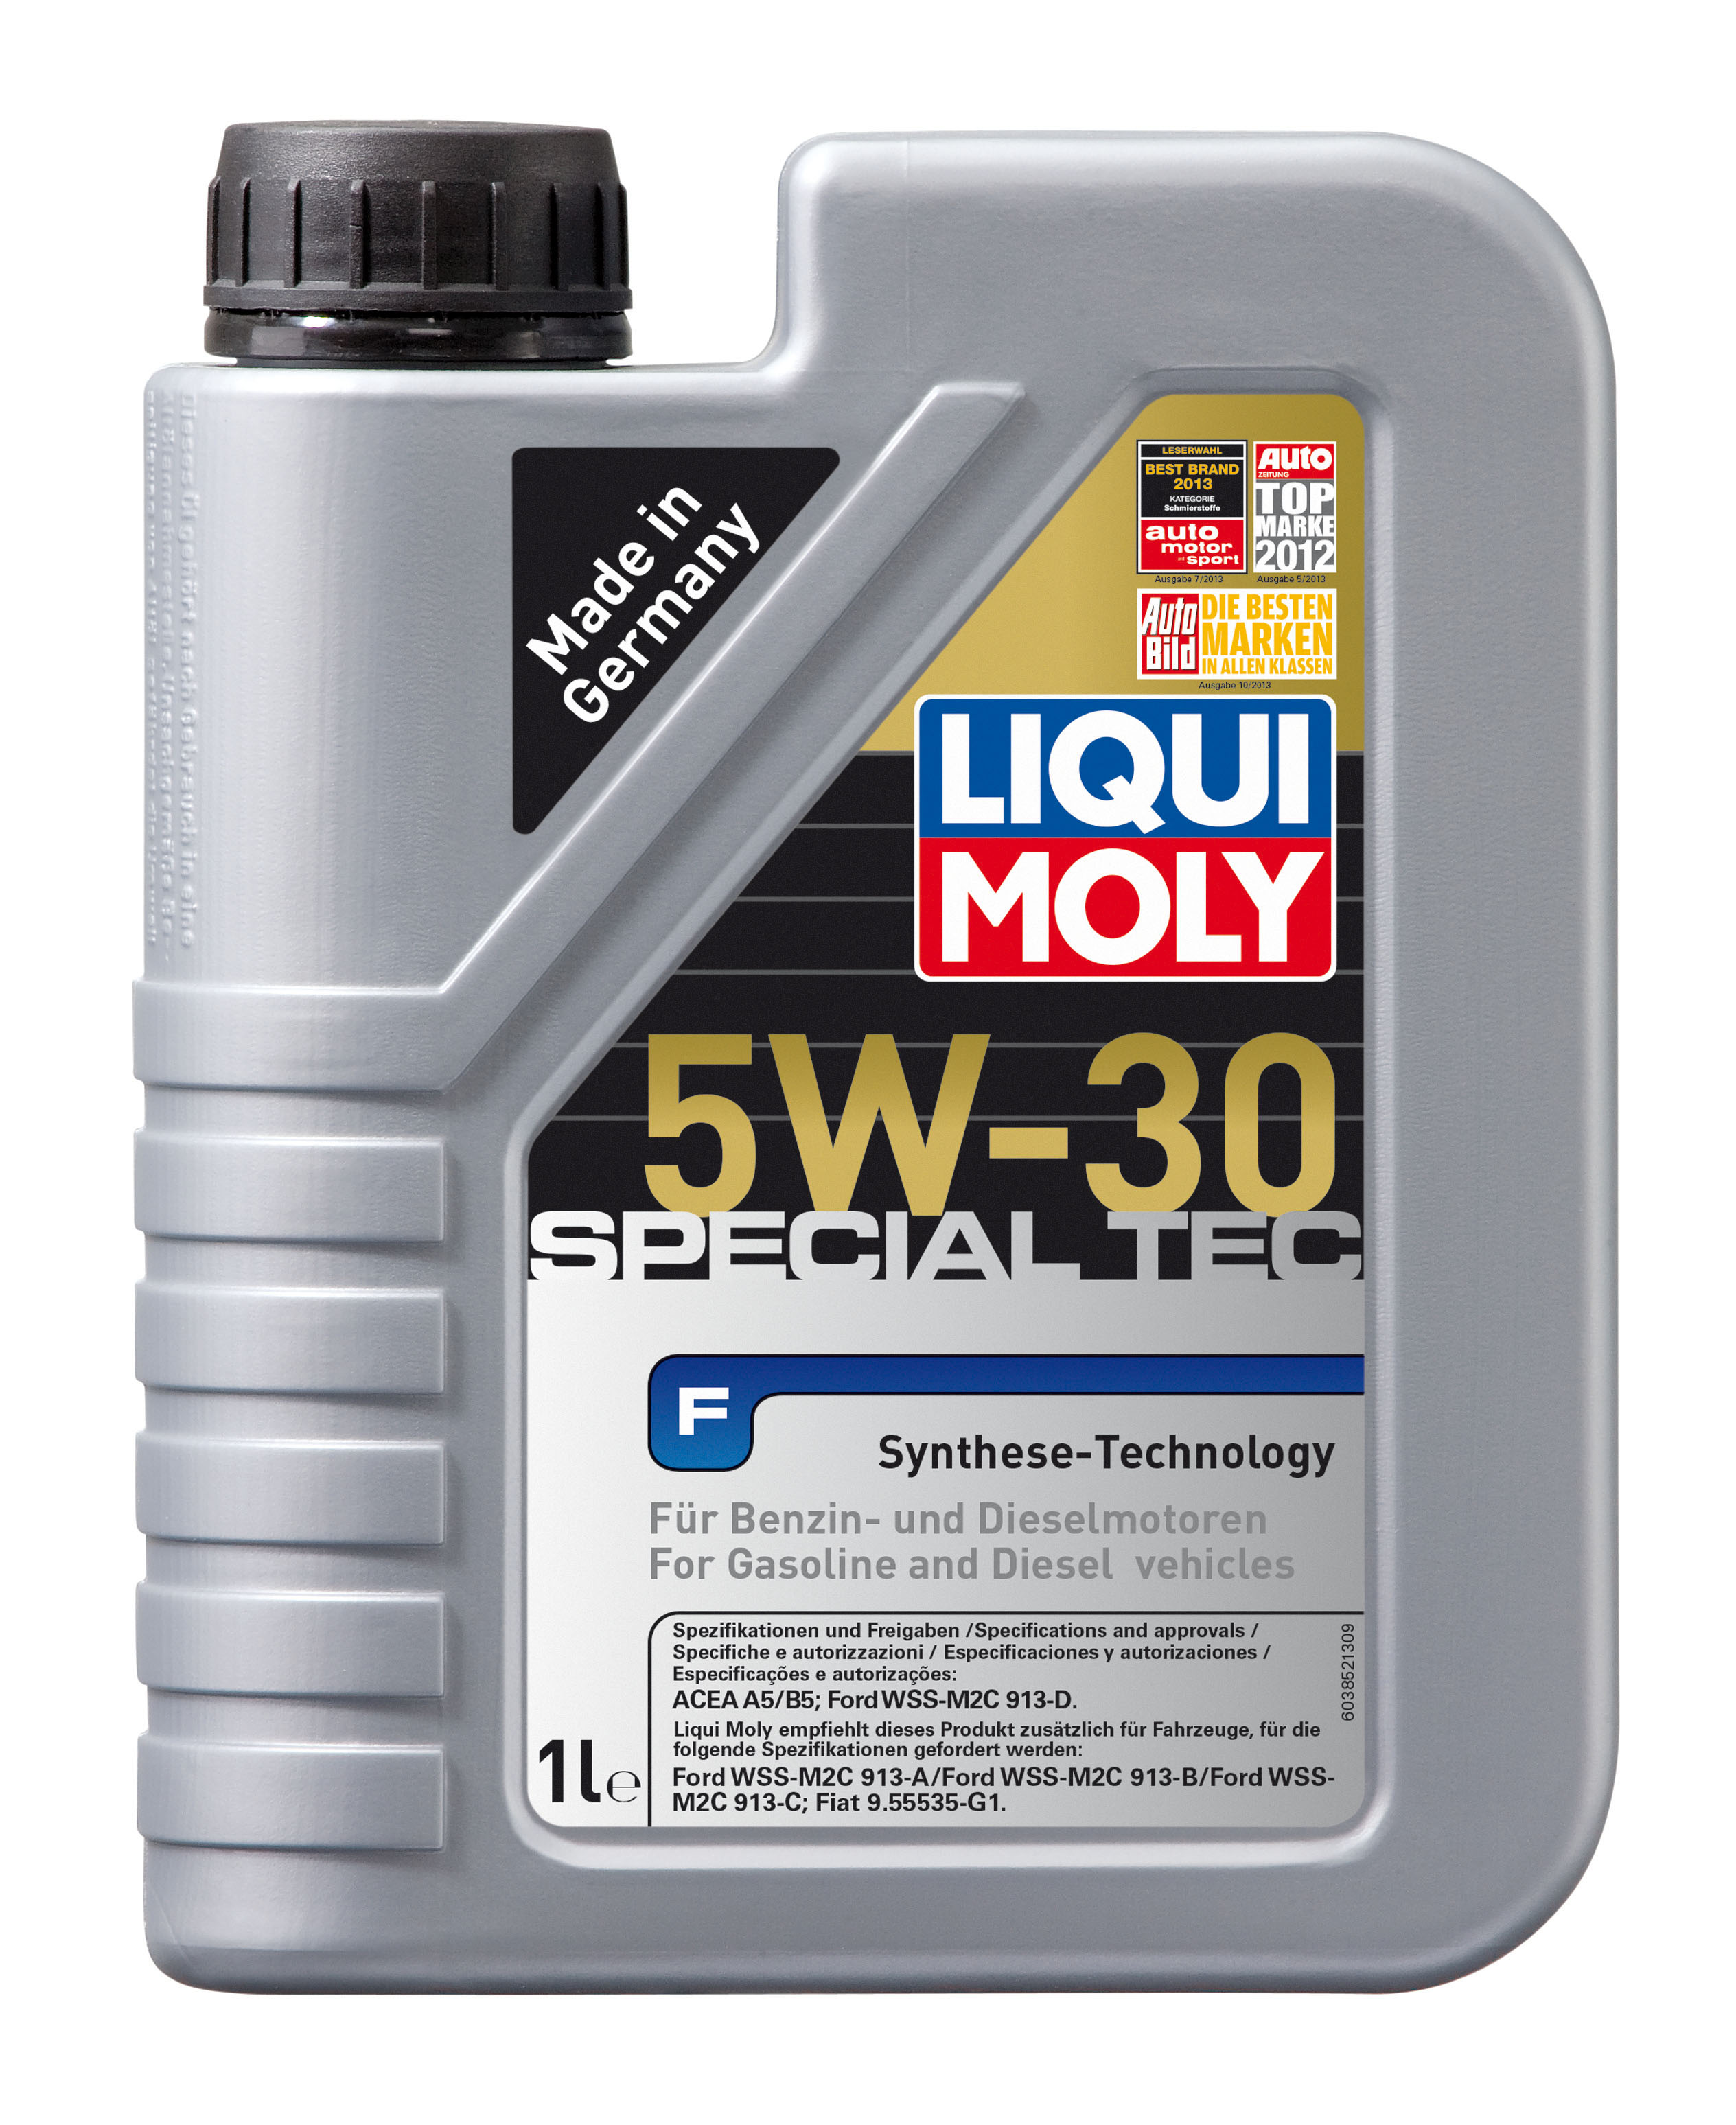 Масло Моторное масло LIQUI MOLY Special Tec F 5W-30 (арт. 8063)